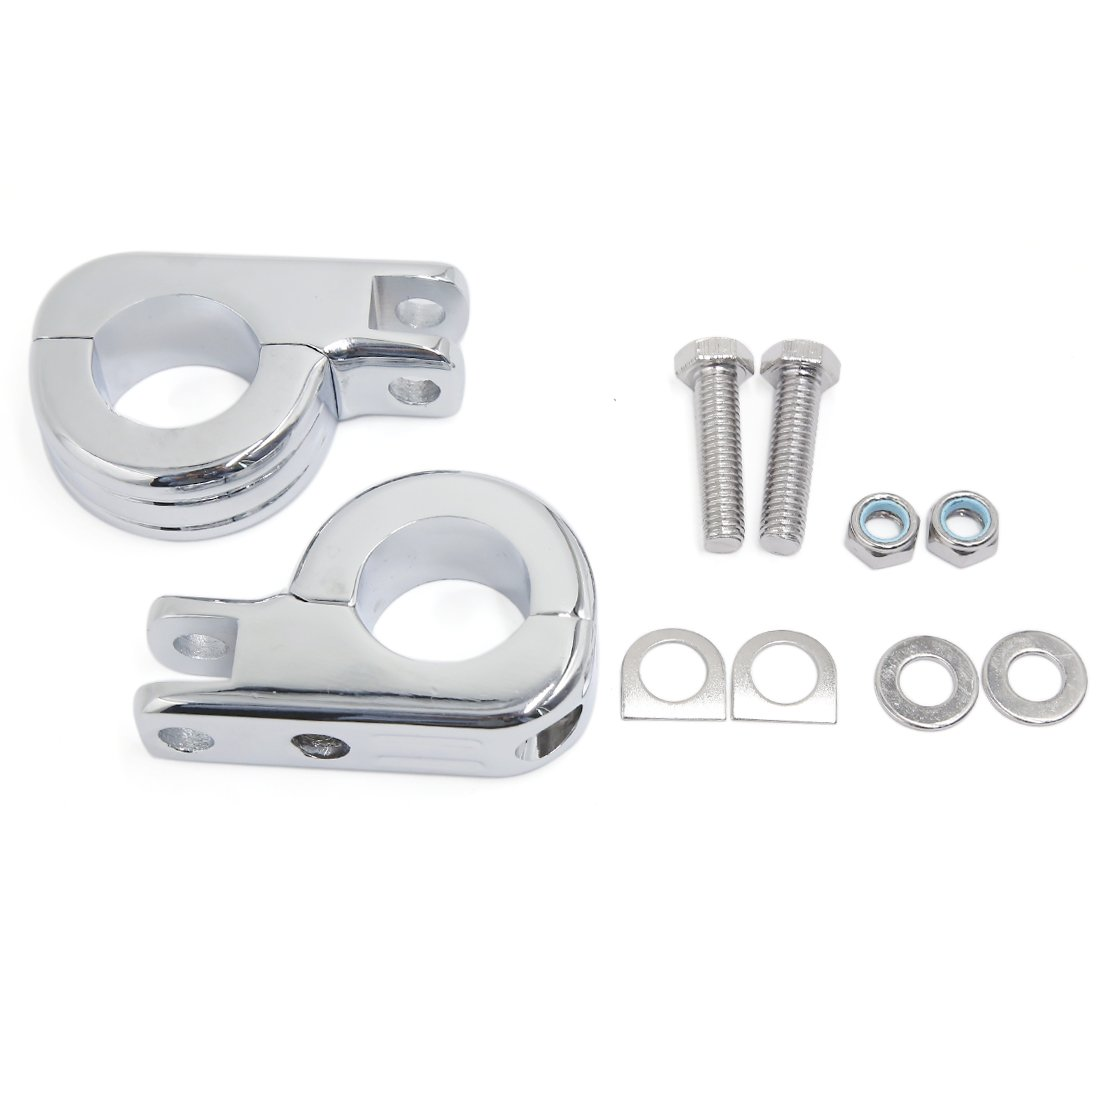 uxcell 1.25'' 1 1/4'' Chrome Highway Offset P Clamp Footpegs Mount Kit For Harley Davidson Engine Guard Bar Universal